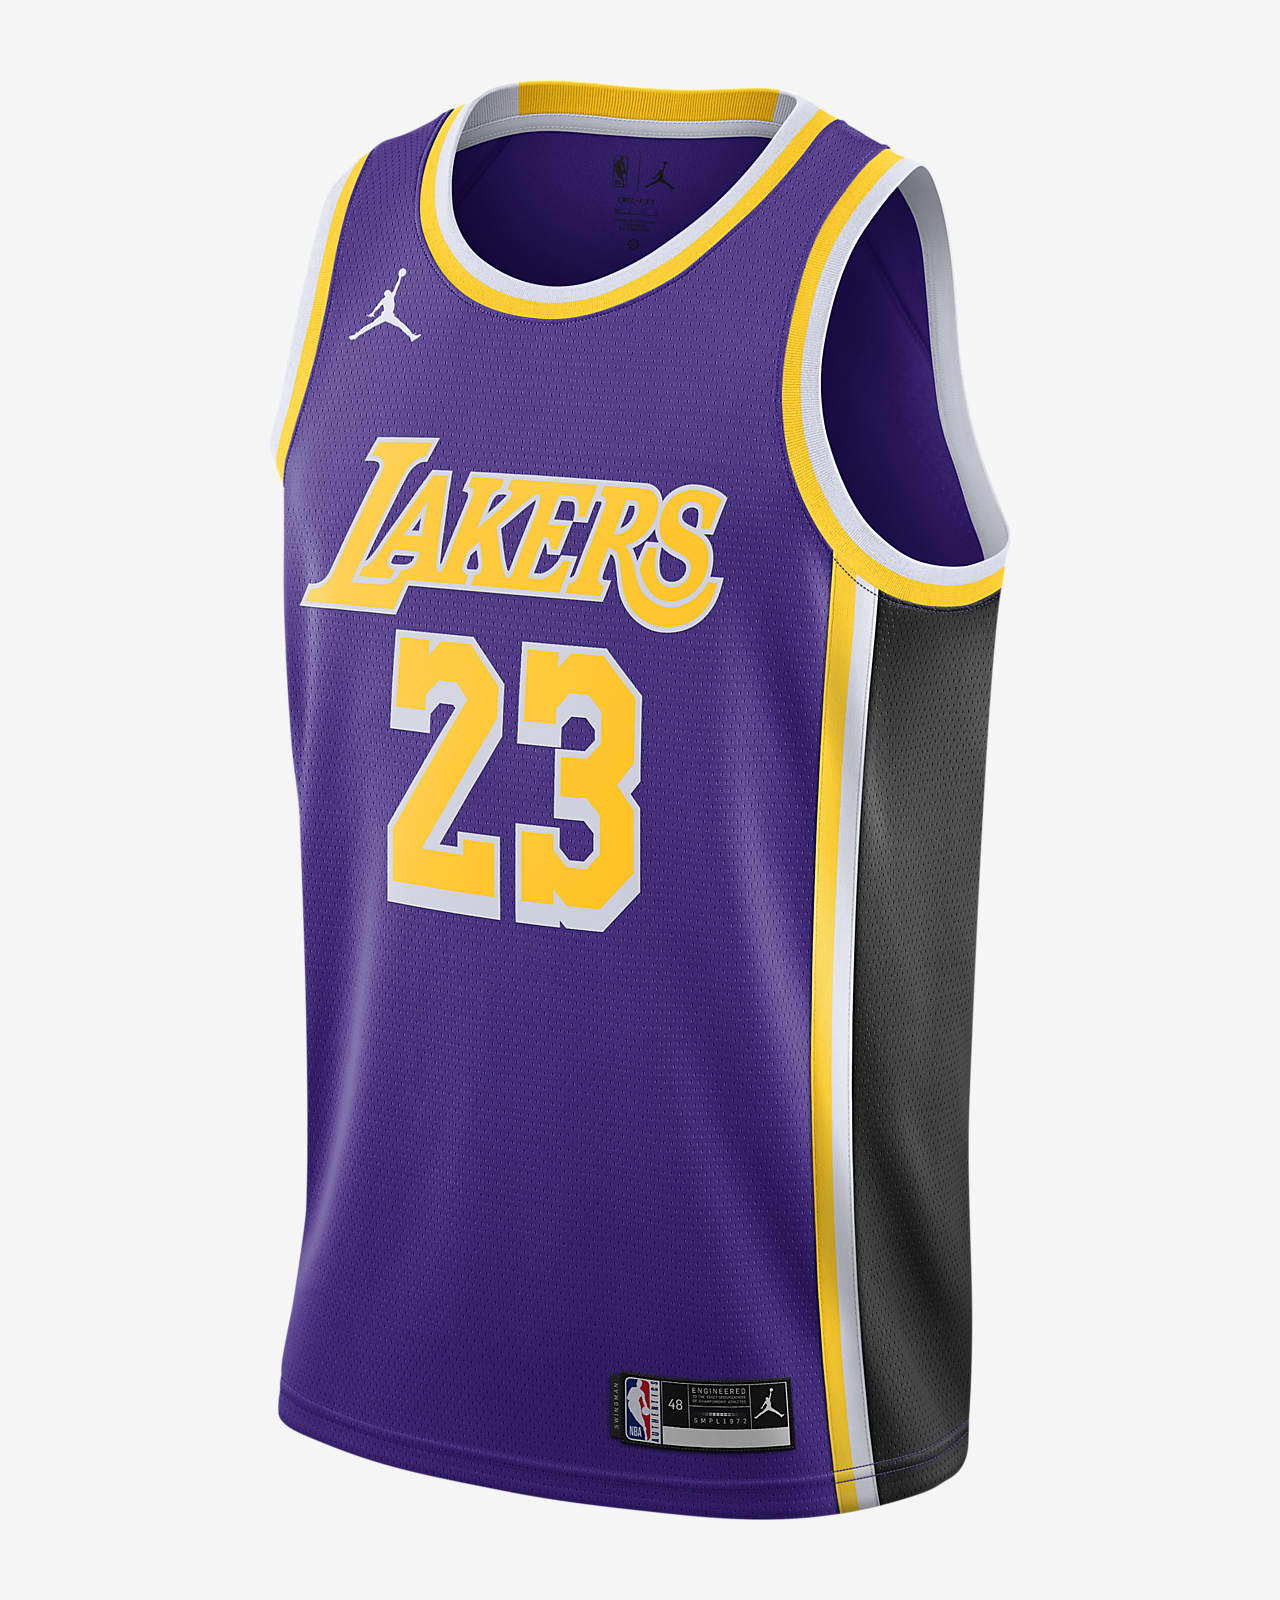 LeBron James Lakers Statement Edition 2020 Jordan NBA Swingman 球衣